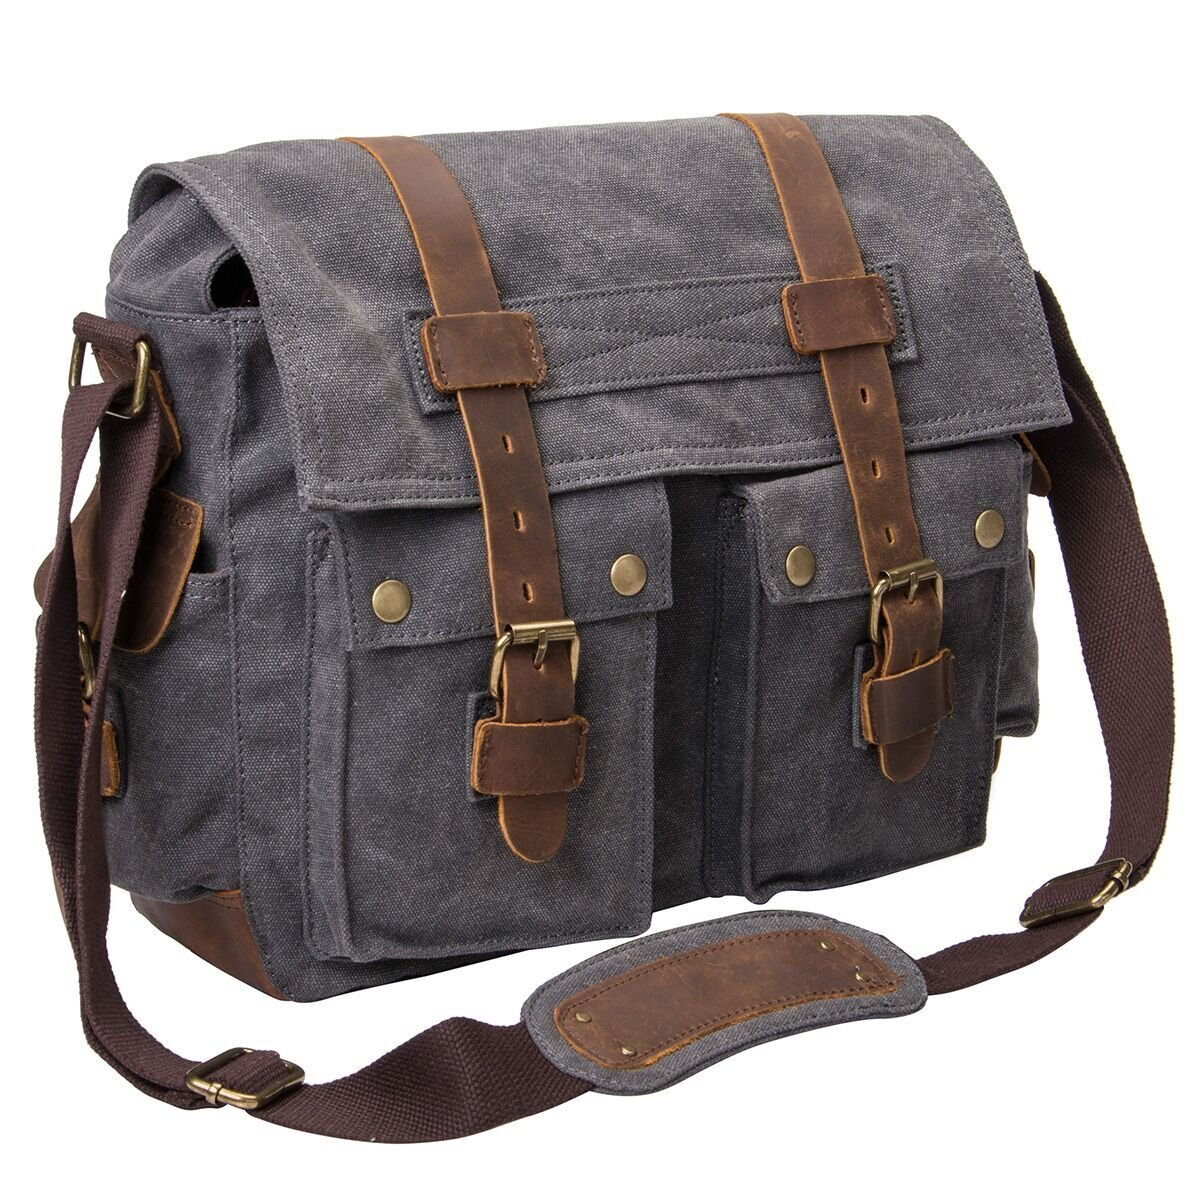 Top 10 Best Fashionable DSLR Camera Bags for Women Reviews 2018-2020 ... 079494d3f5